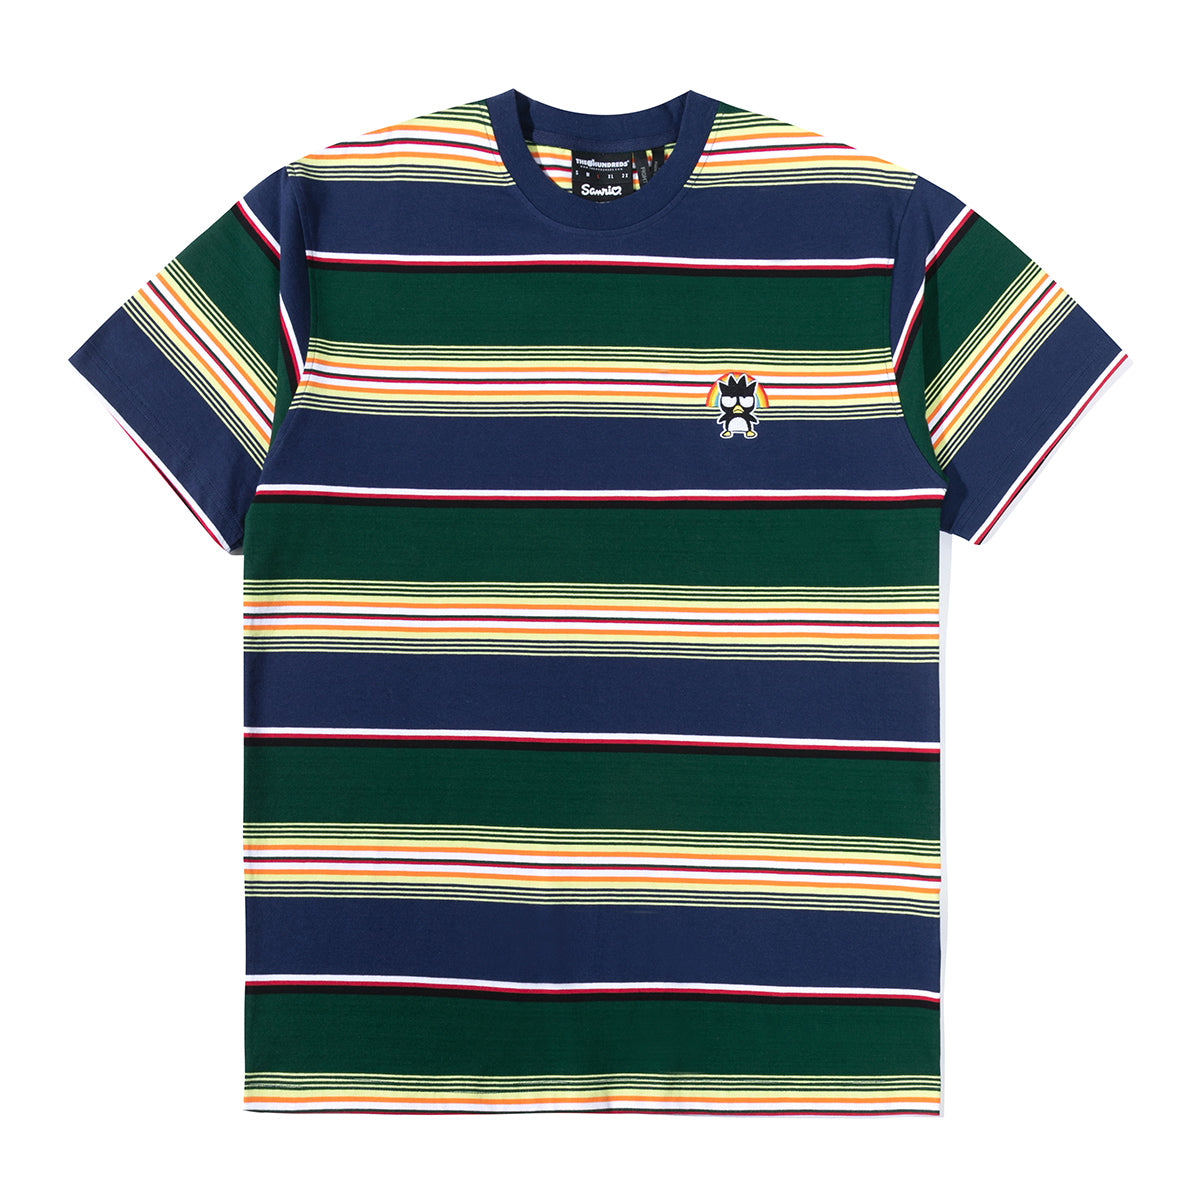 The Hundreds x Sanrio Badtz-Maru Forest Highland T-Shirt Stripes